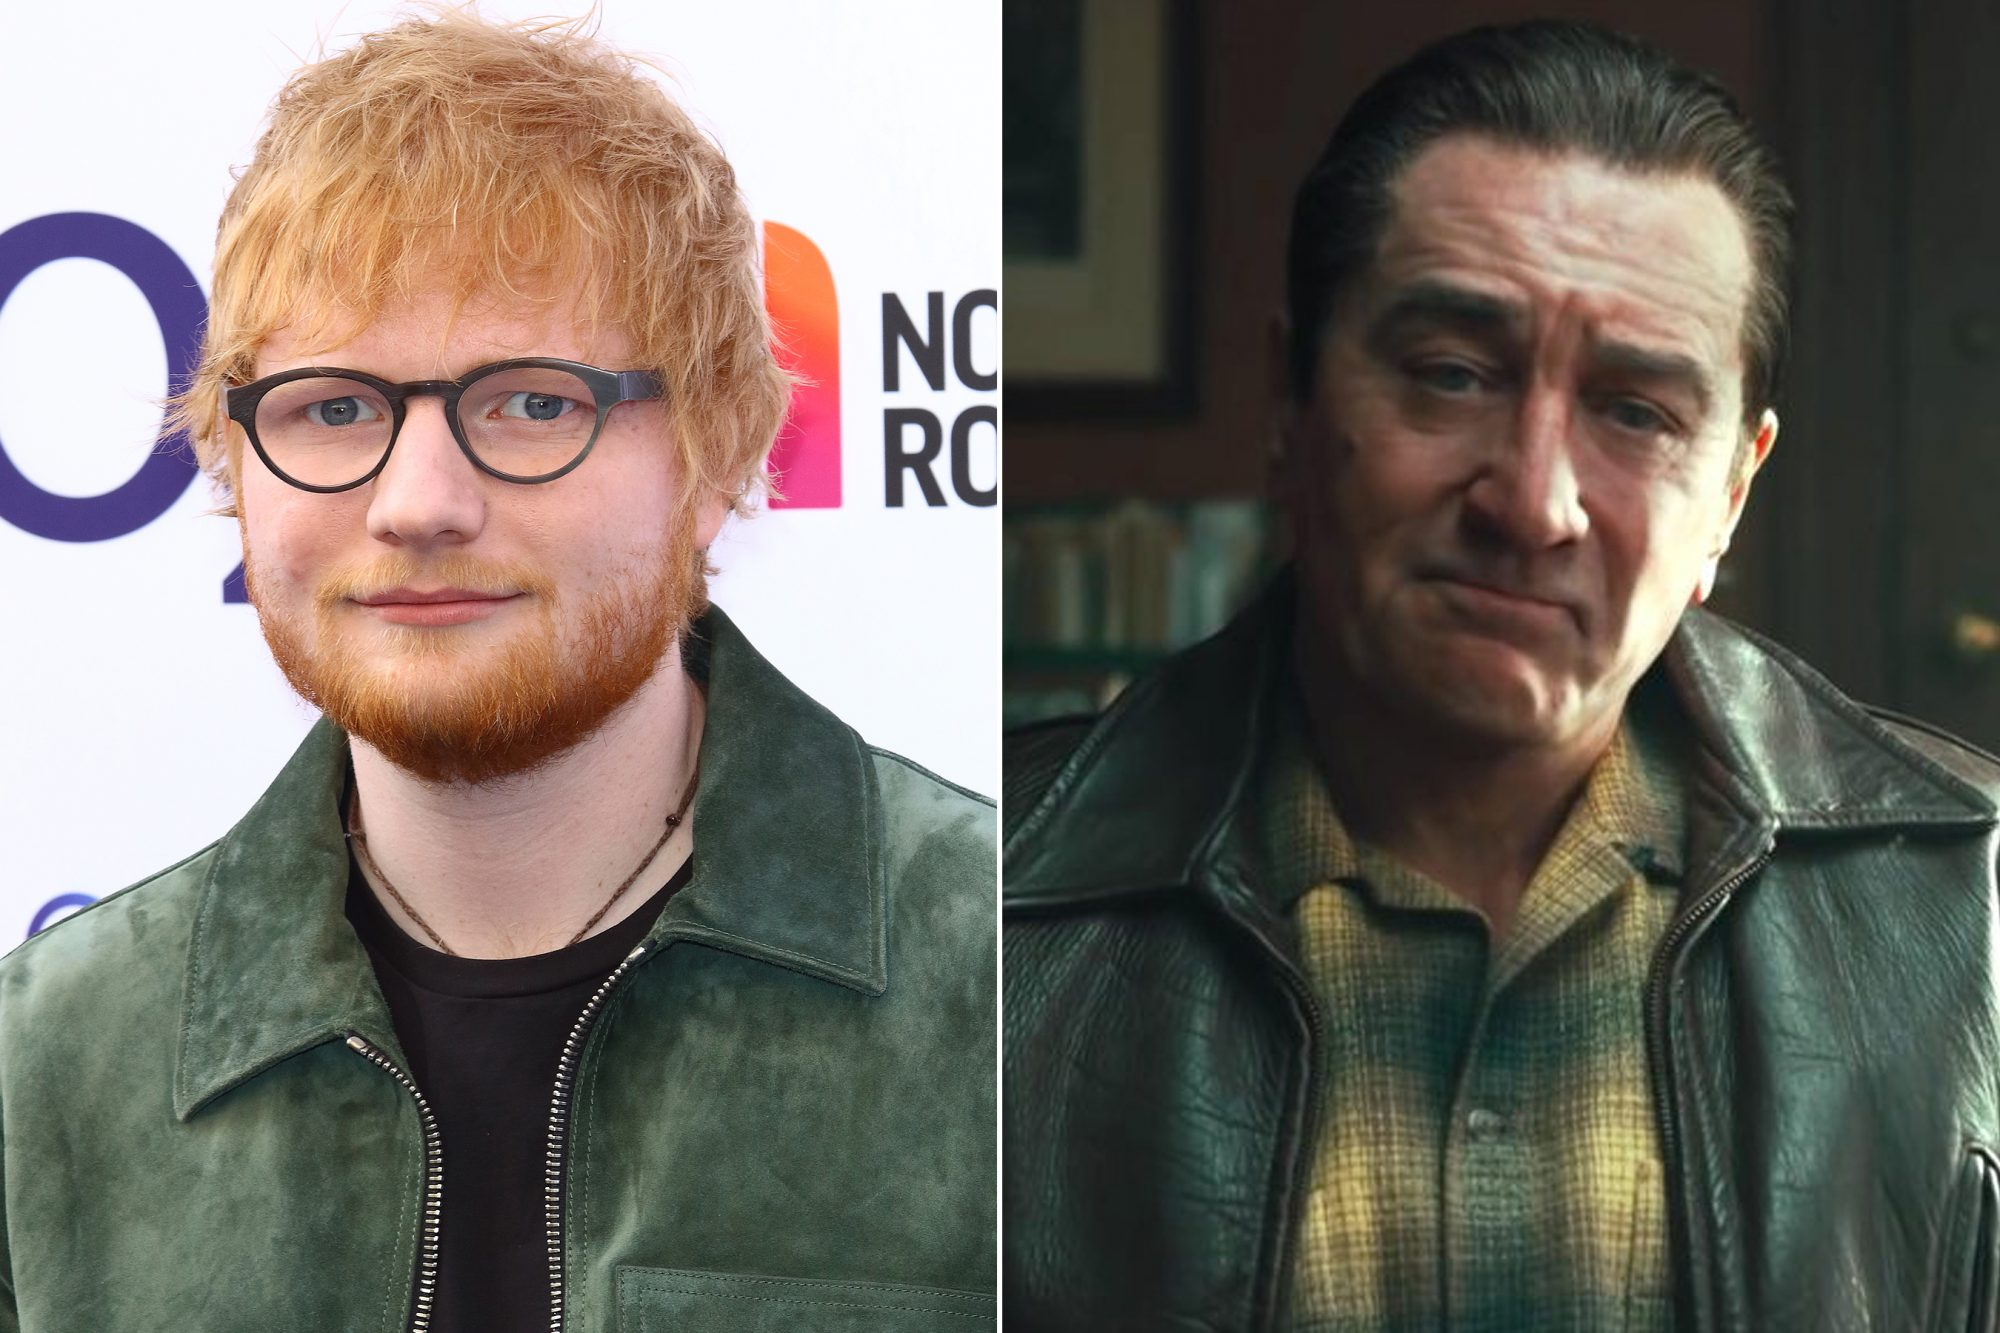 Ed Sheeran, Robert De Niro